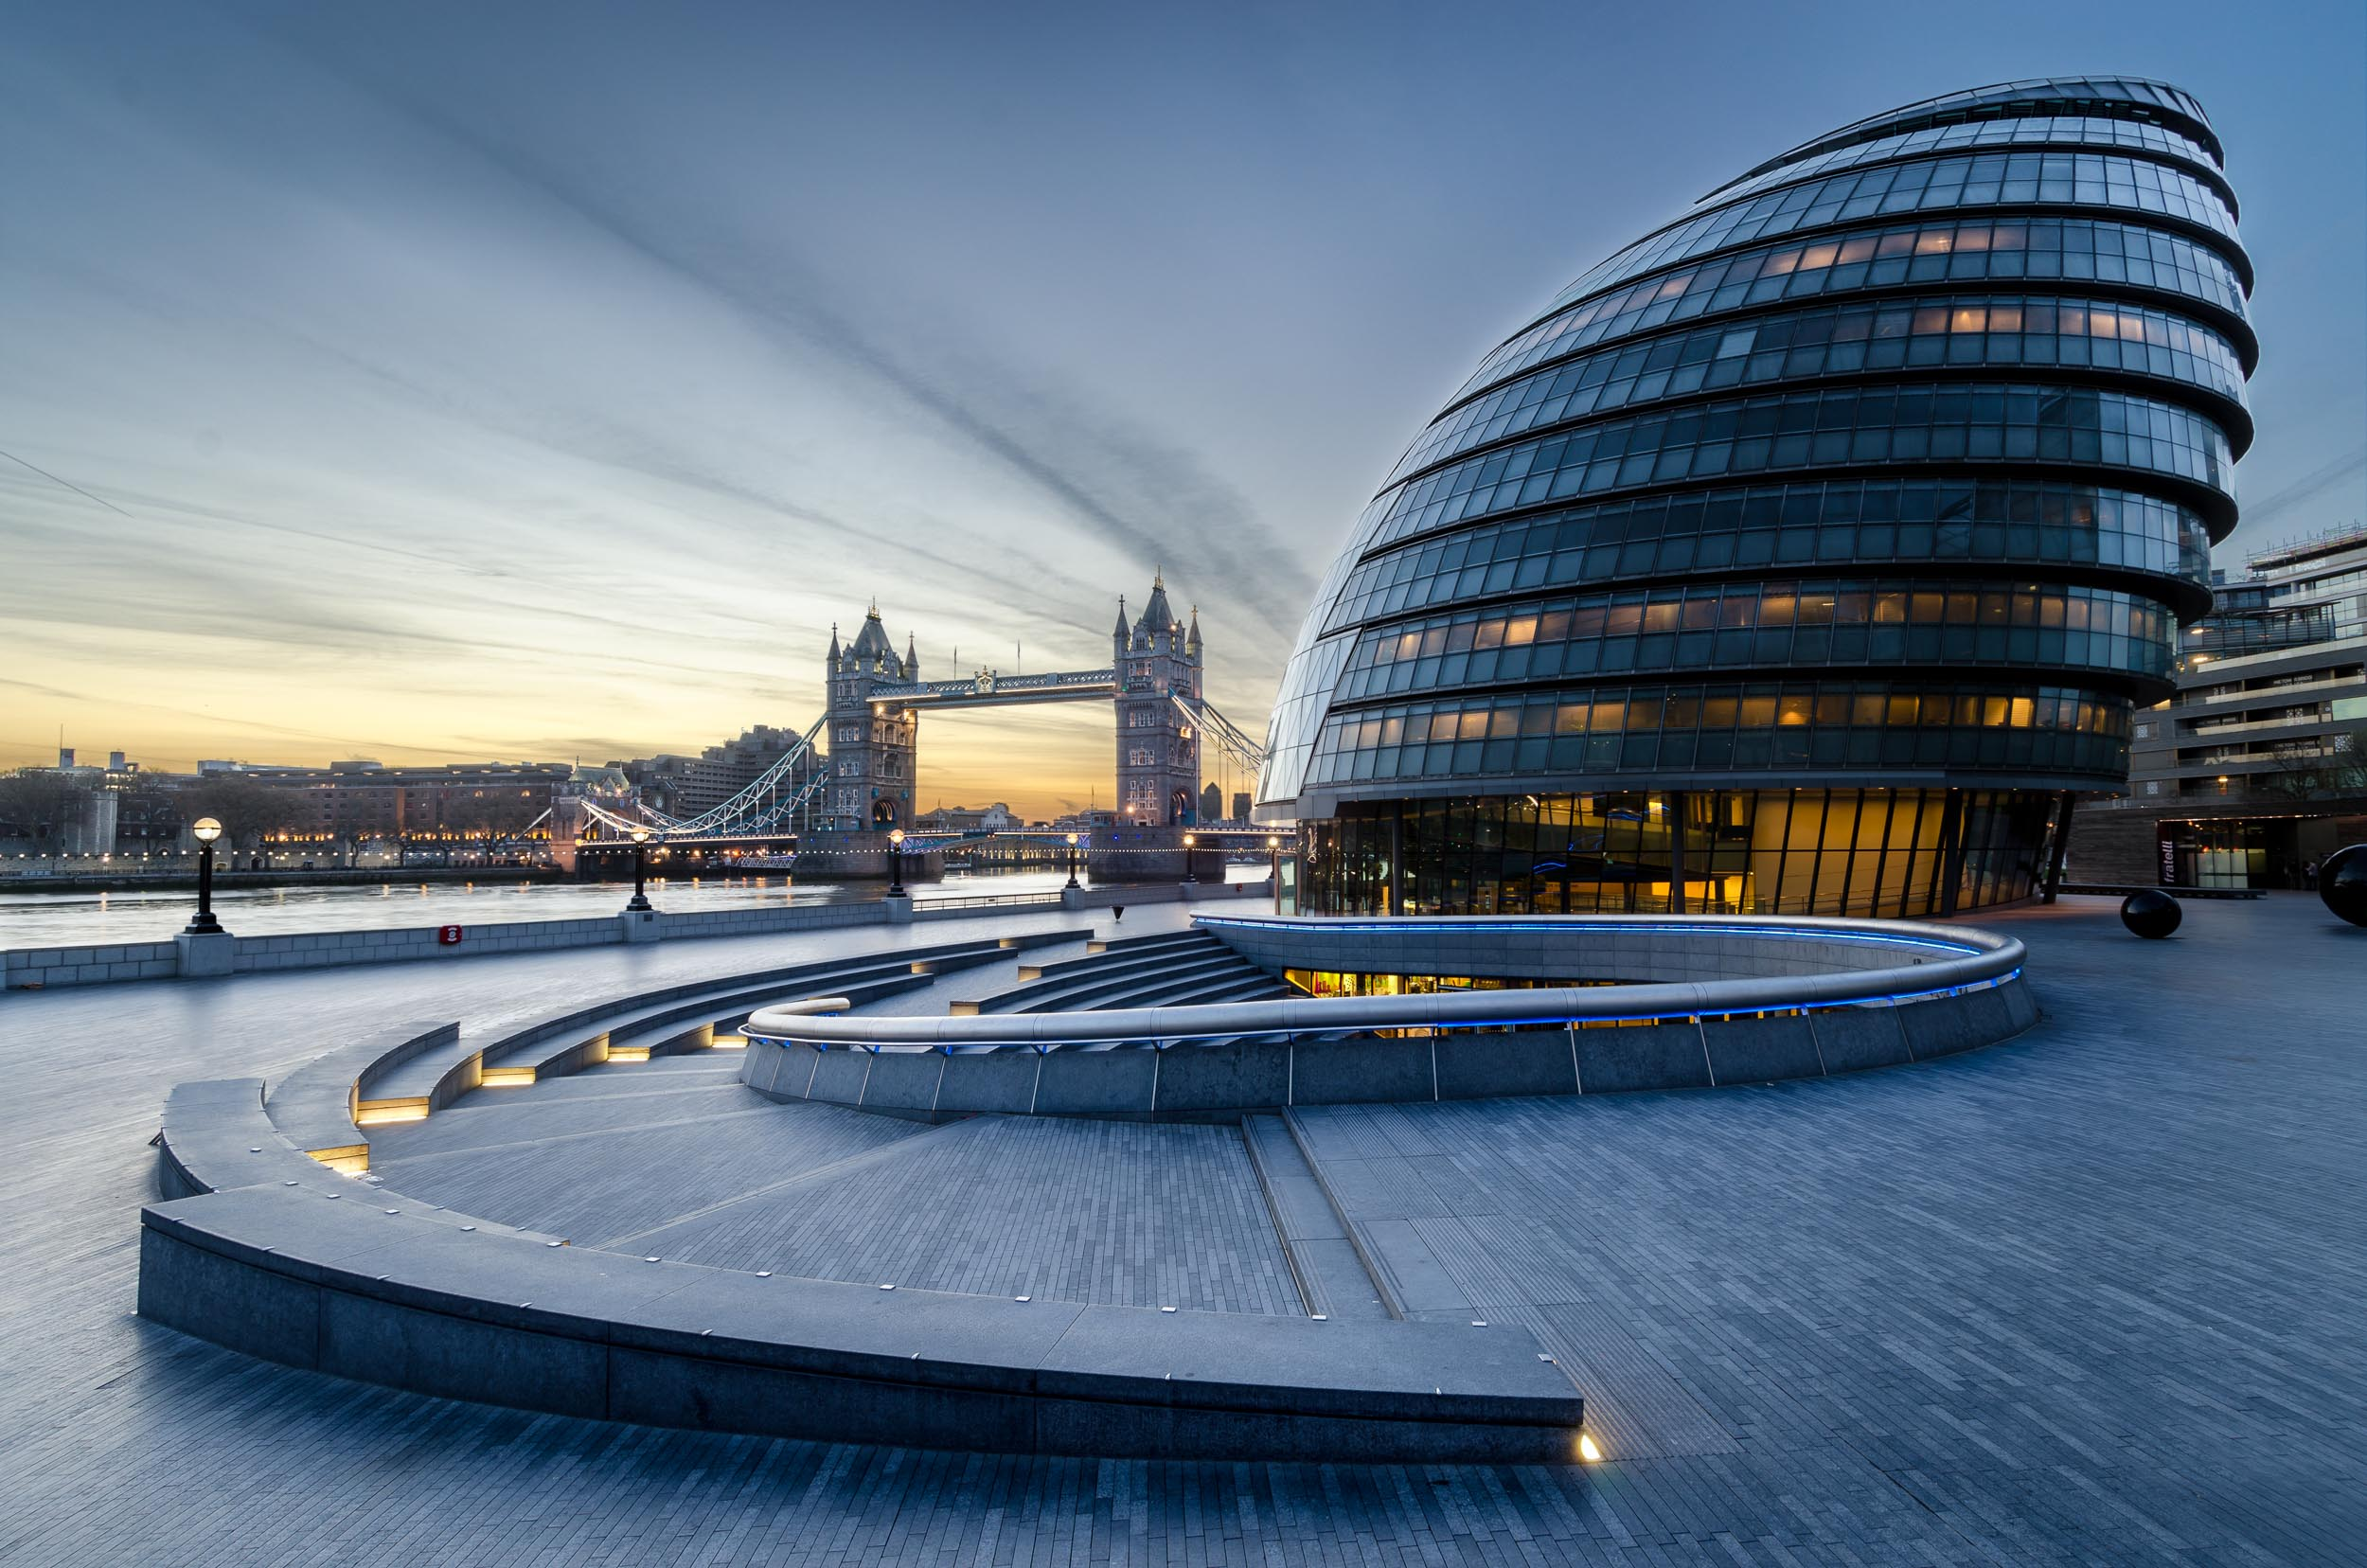 City Hall, London - Architectural Exterior/Cityscape Photography